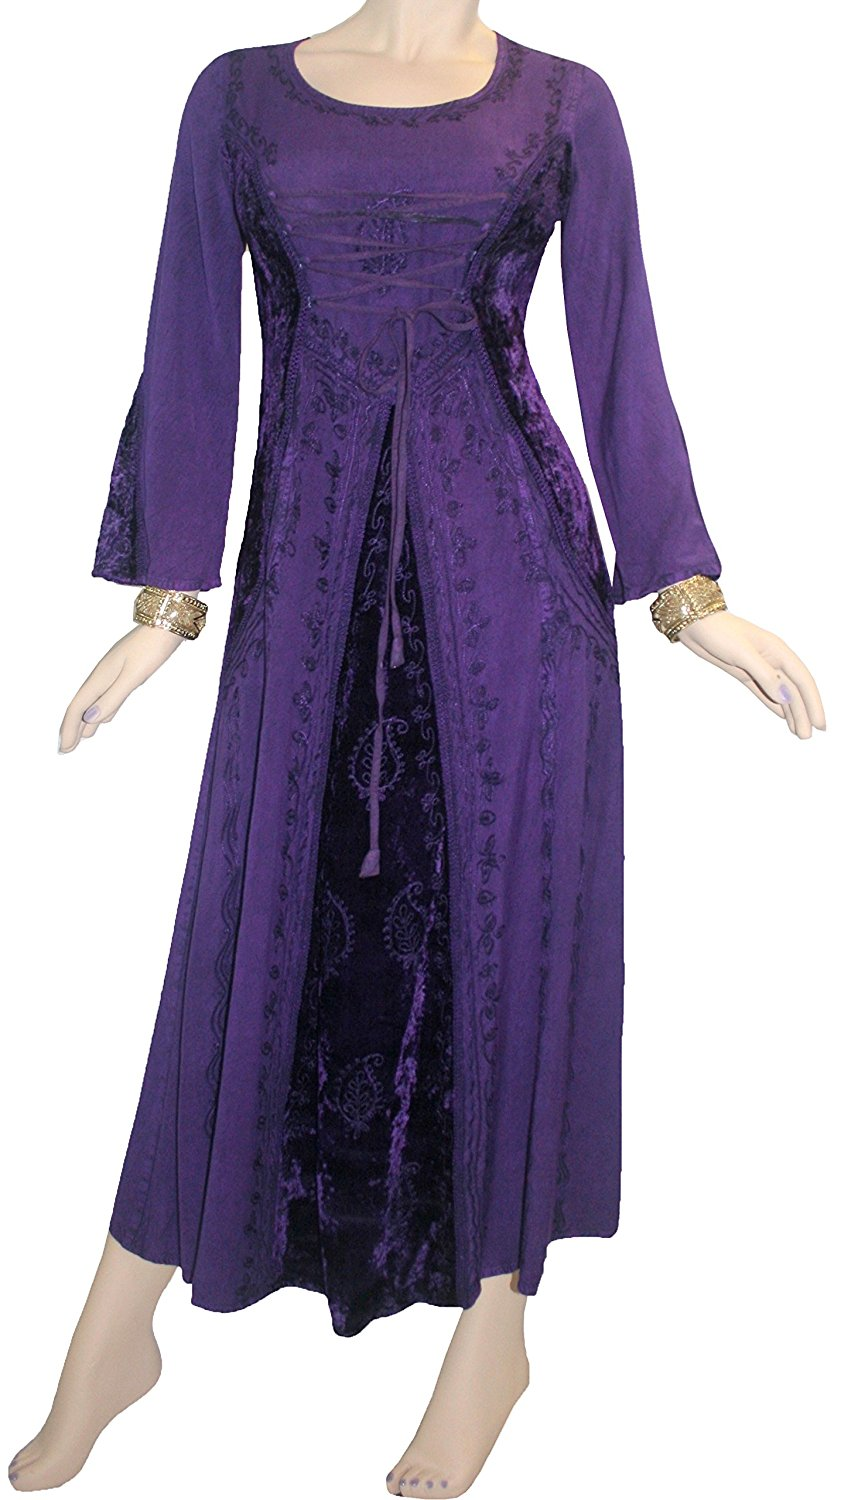 204 DR Scooped Neck Bohemian Corset Long Dress Gown – Agan Traders